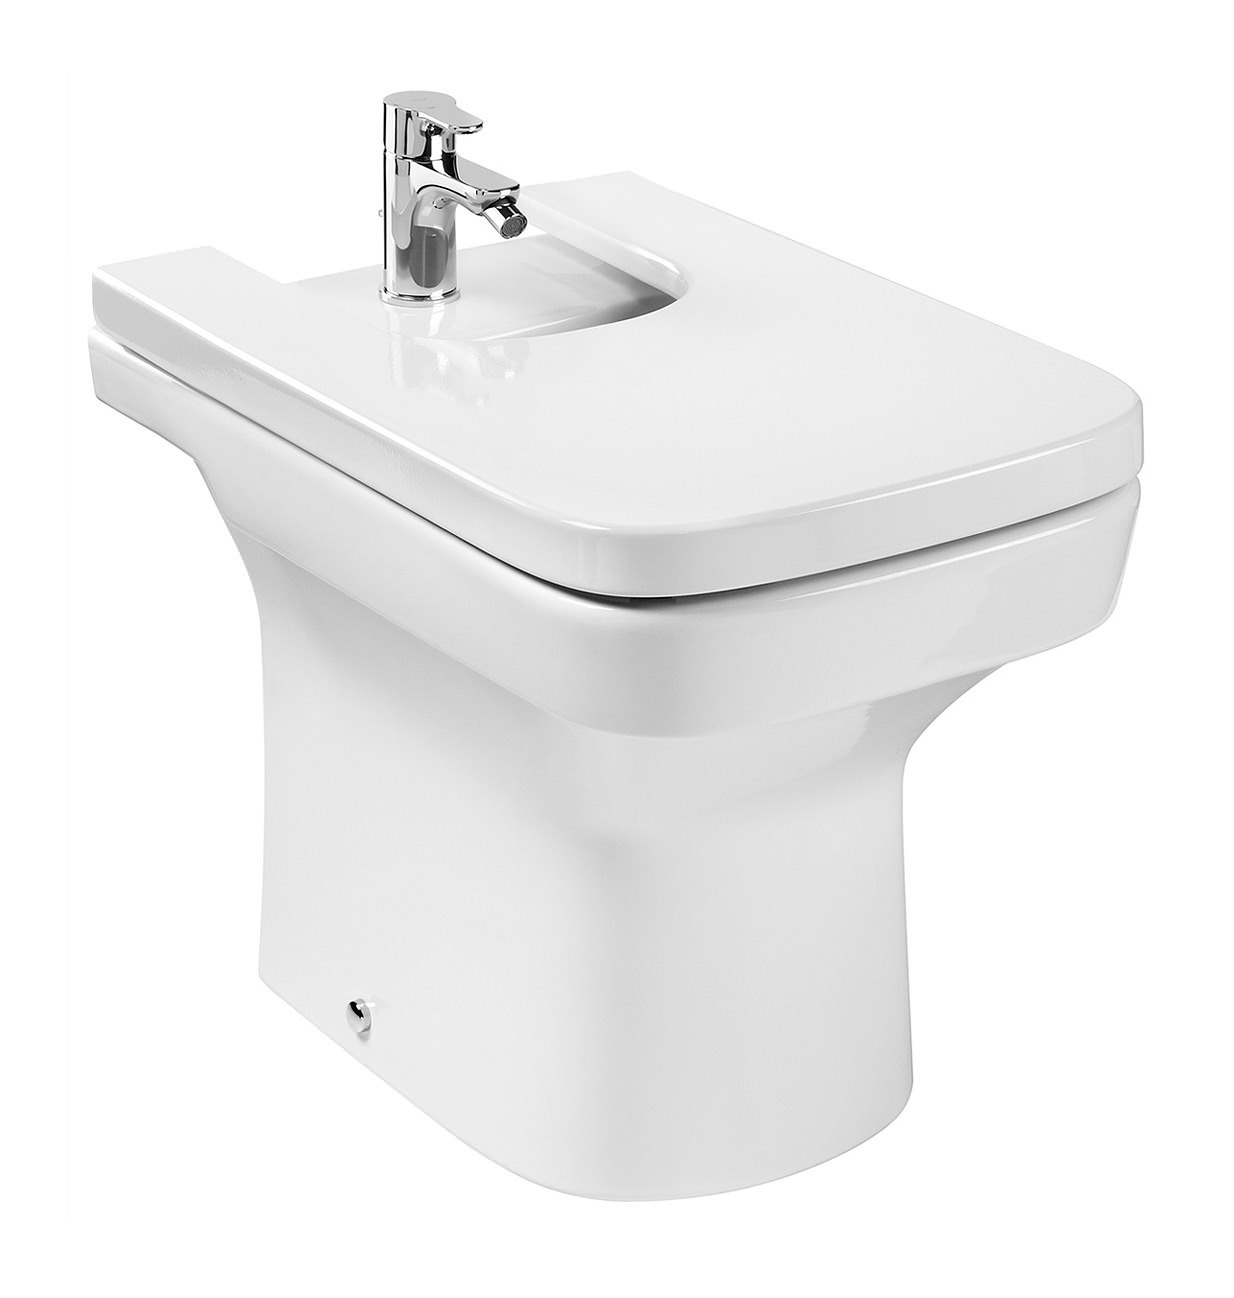 Roca dama n bidet 570mm white finish 357784000 for Roca dama toilet